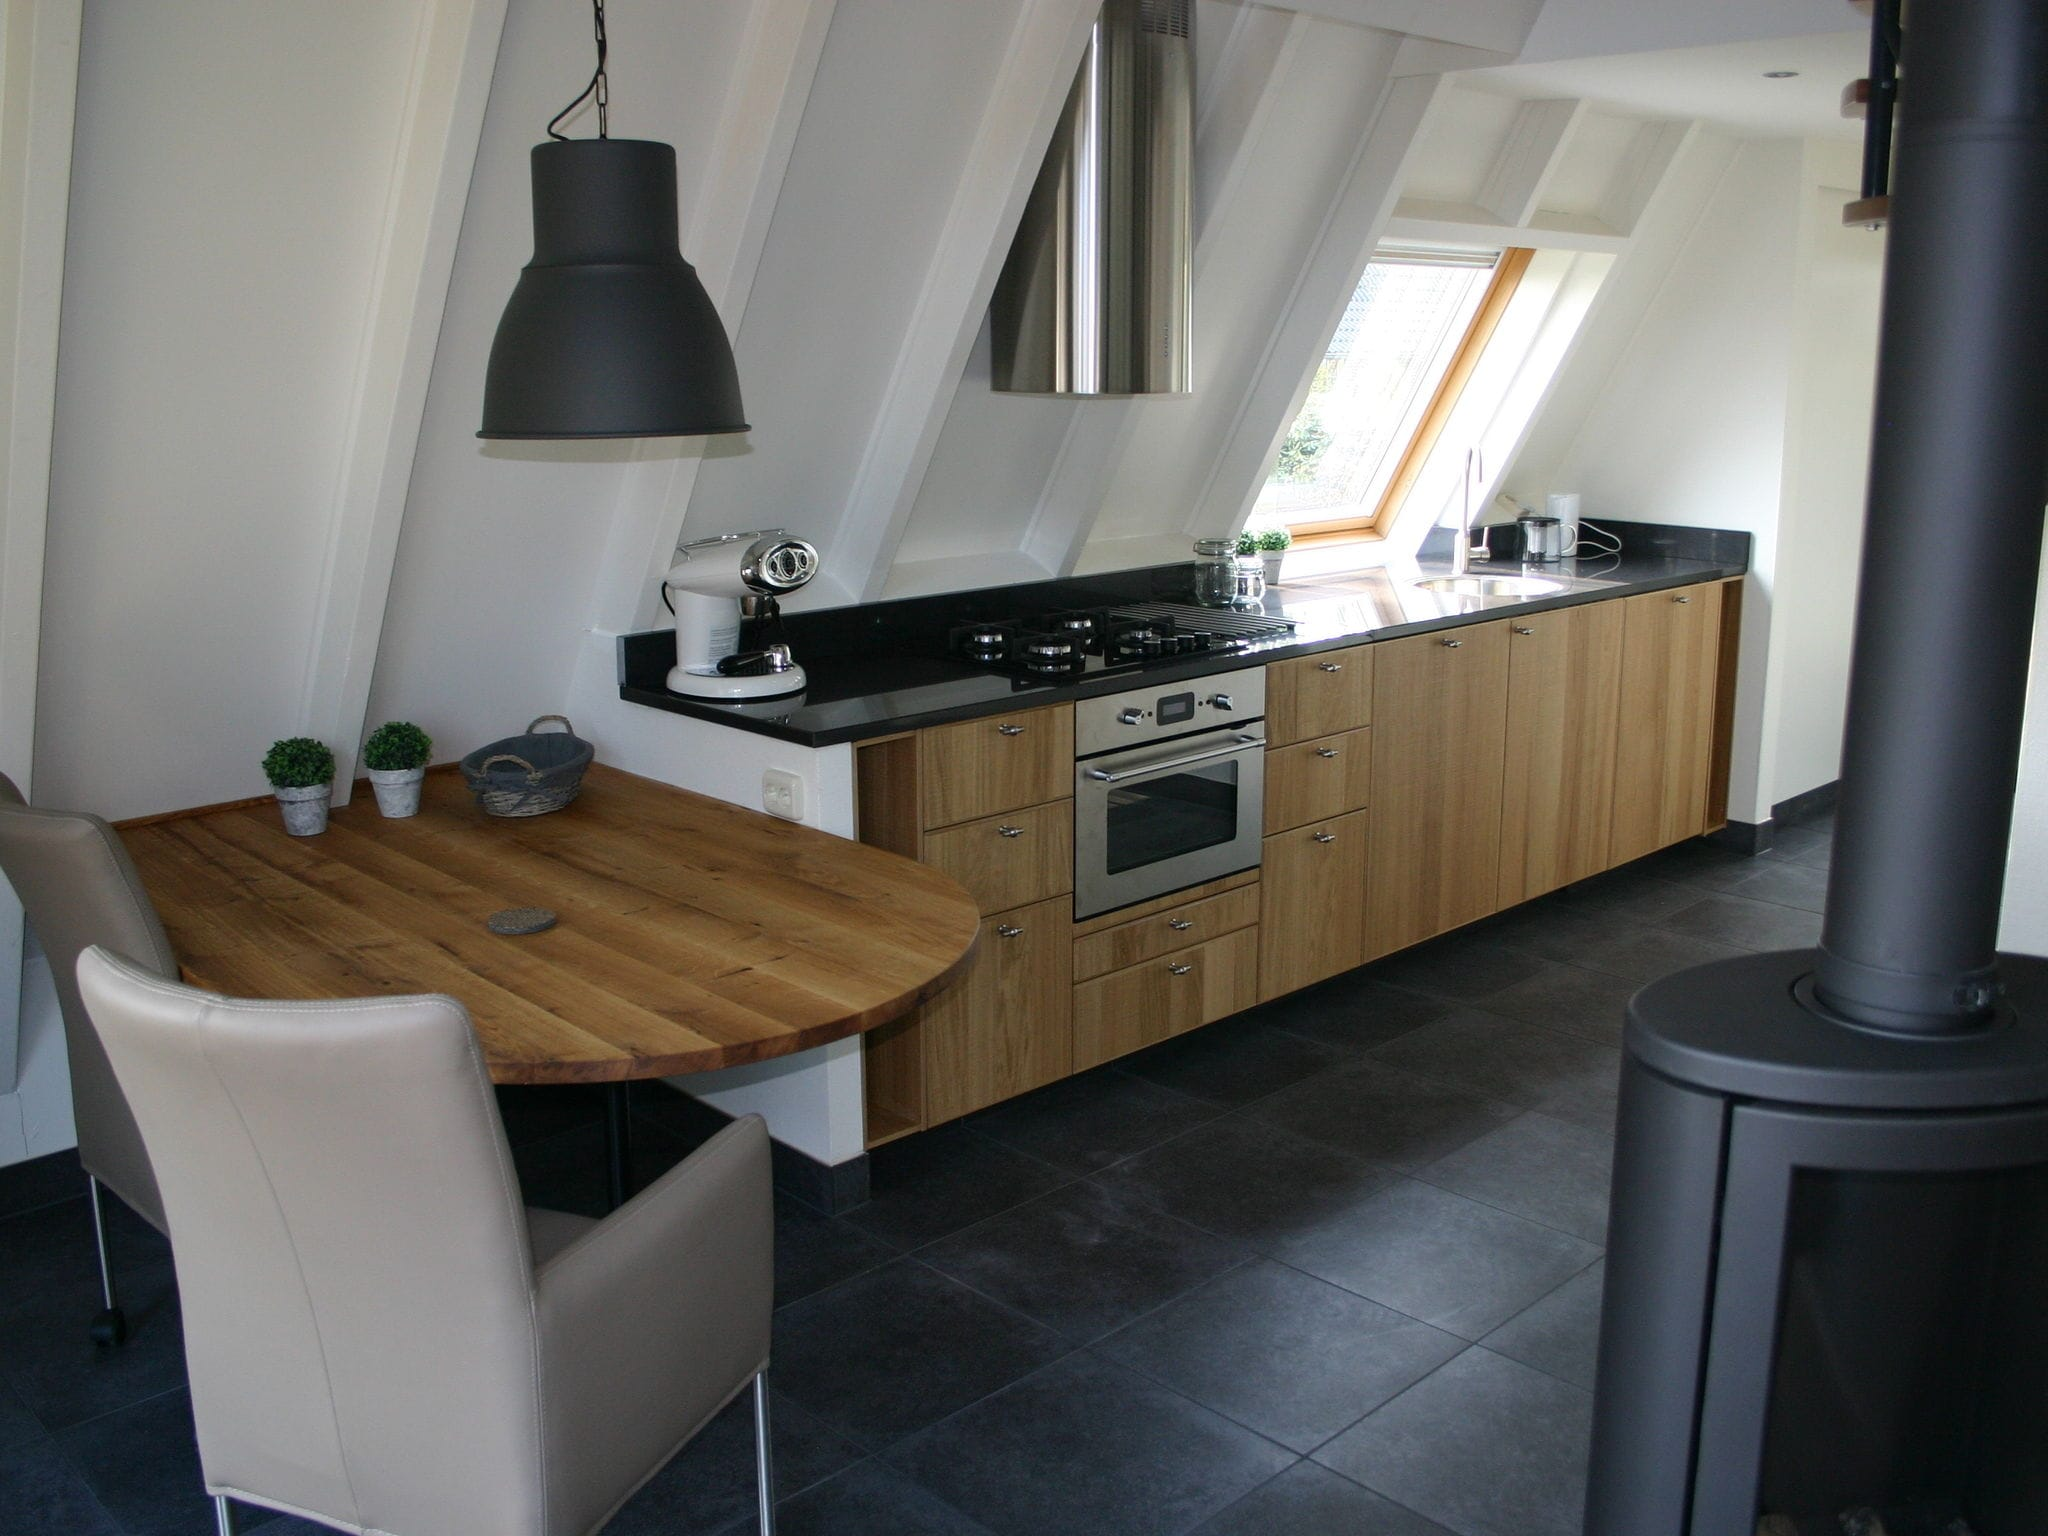 Holland | Overijssel | Holiday home Hof van Salland - Wellness Lodges 2 persoons | all year | Kitchen